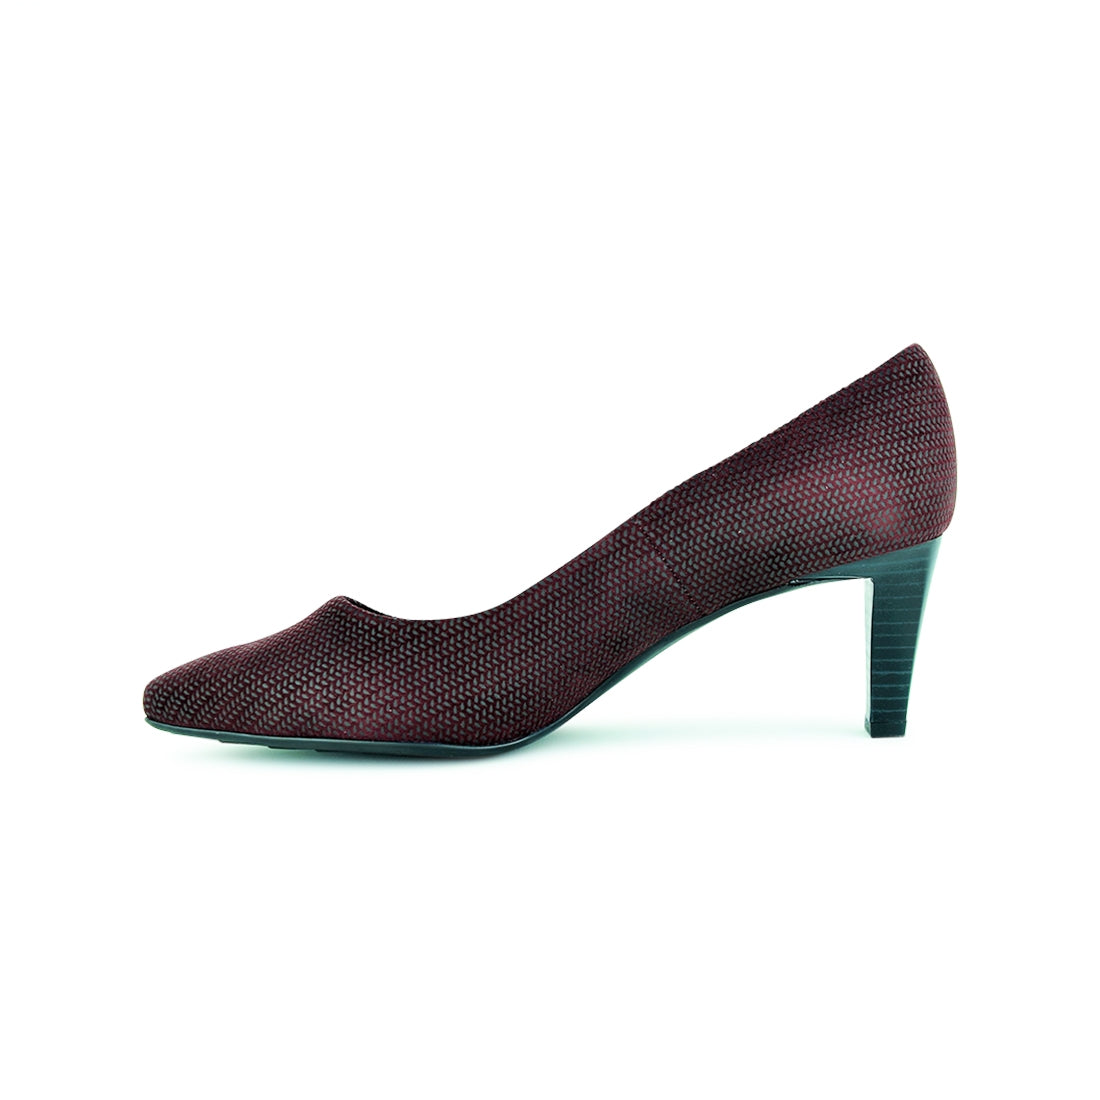 LORA - Peter Kaiser Court Shoe Red Print